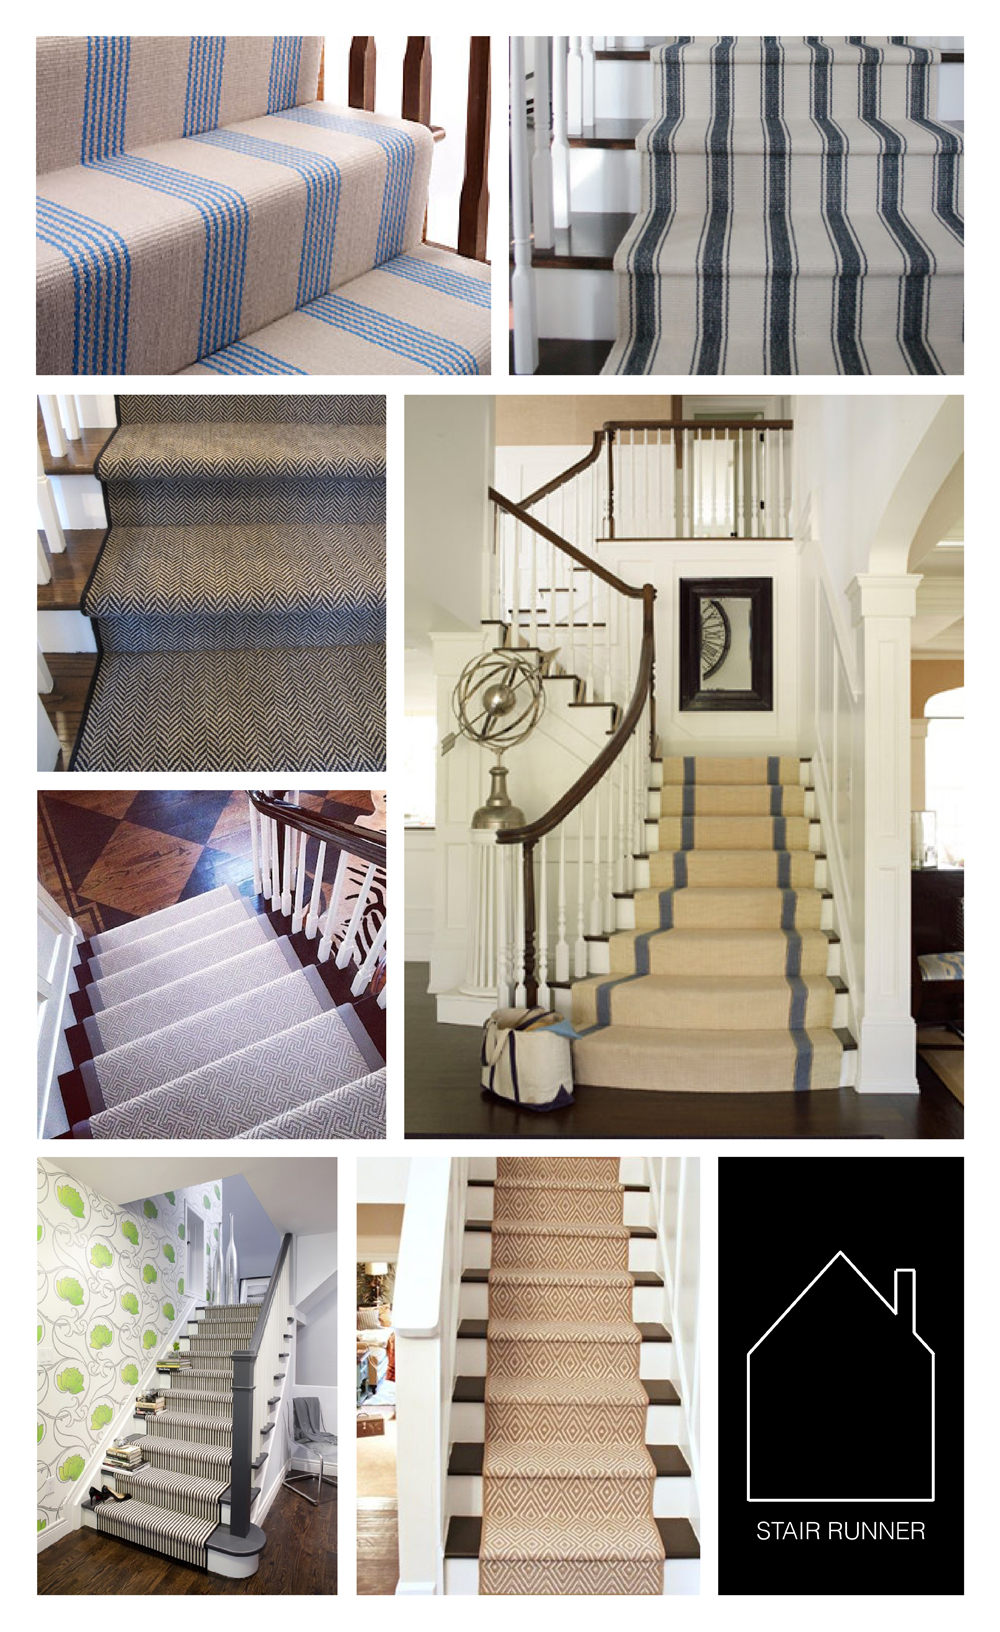 from top left  kathmandu runner by blenheim carpets  dash  albert runnervia charming. stair runner — the place home